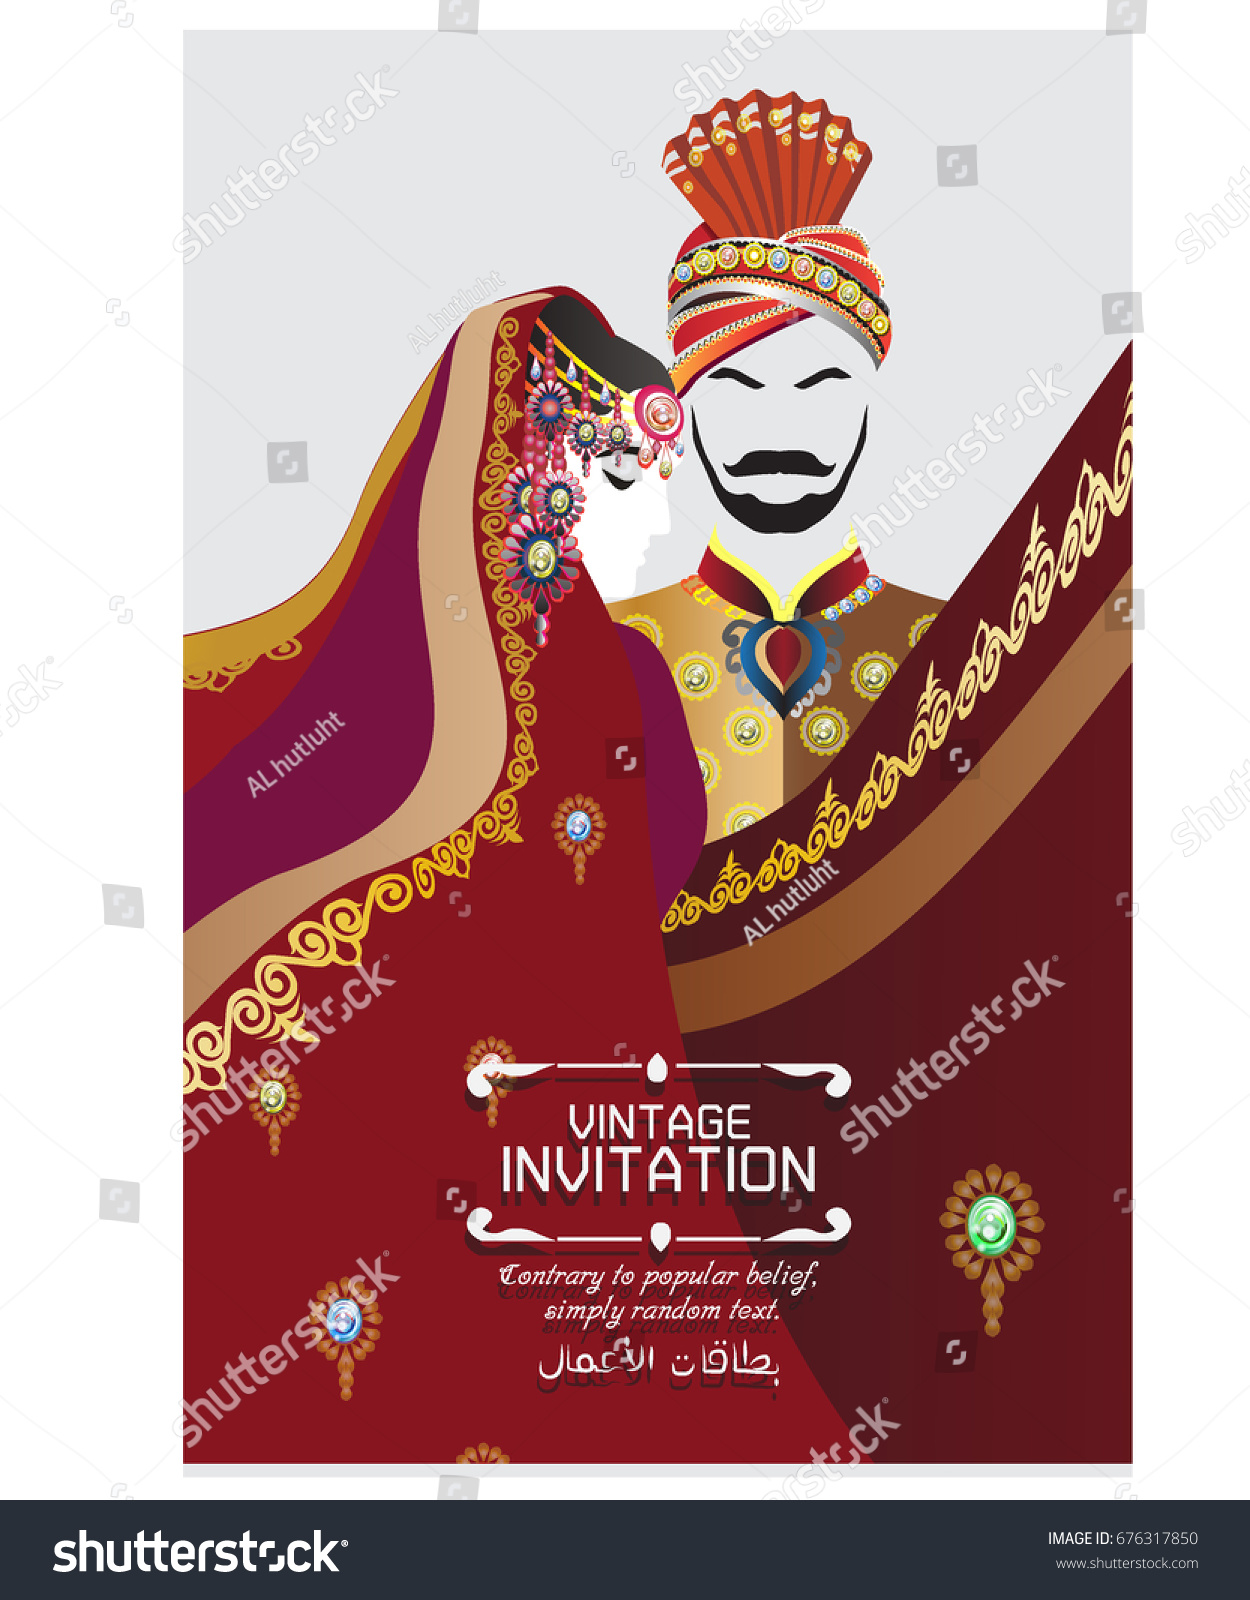 Vector illustration indian wedding invitation card stock vector vector illustration of indian wedding invitation card with abstract background islam arabic india stopboris Images